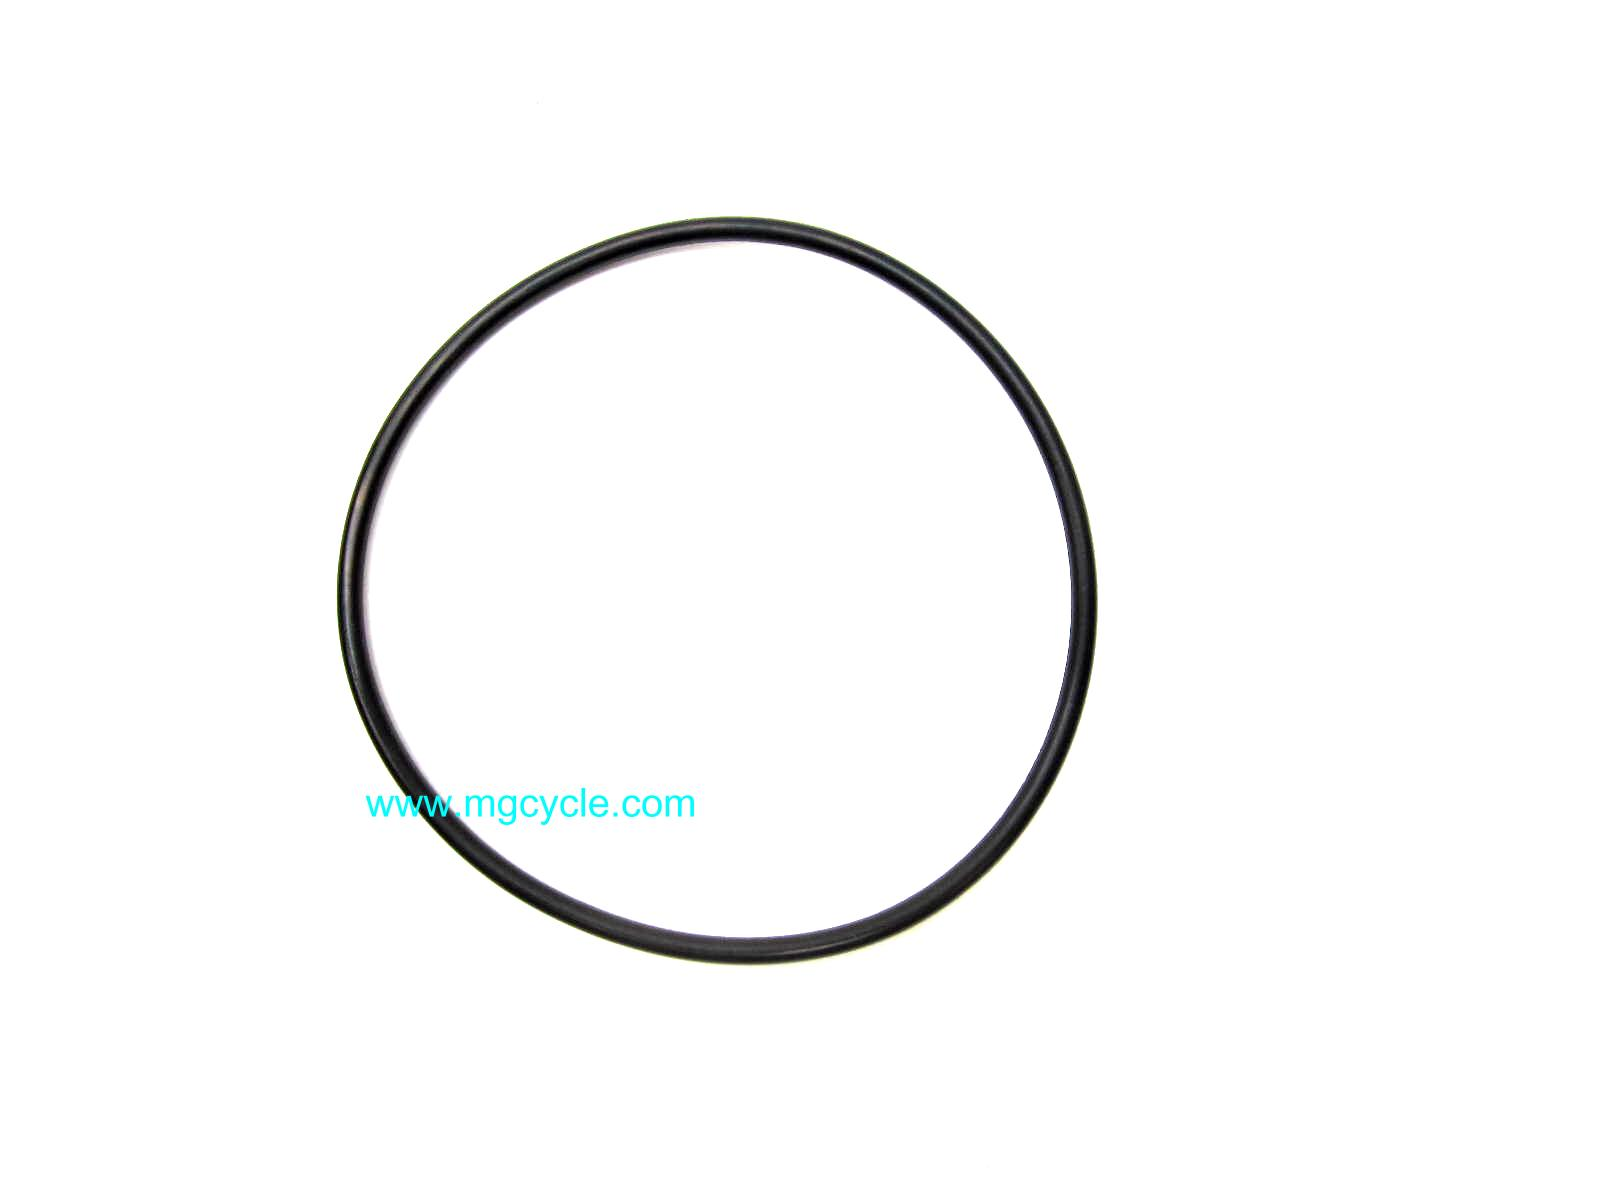 oil filter access o ring, Cent, V11 Sport, speedo oring V700 etc